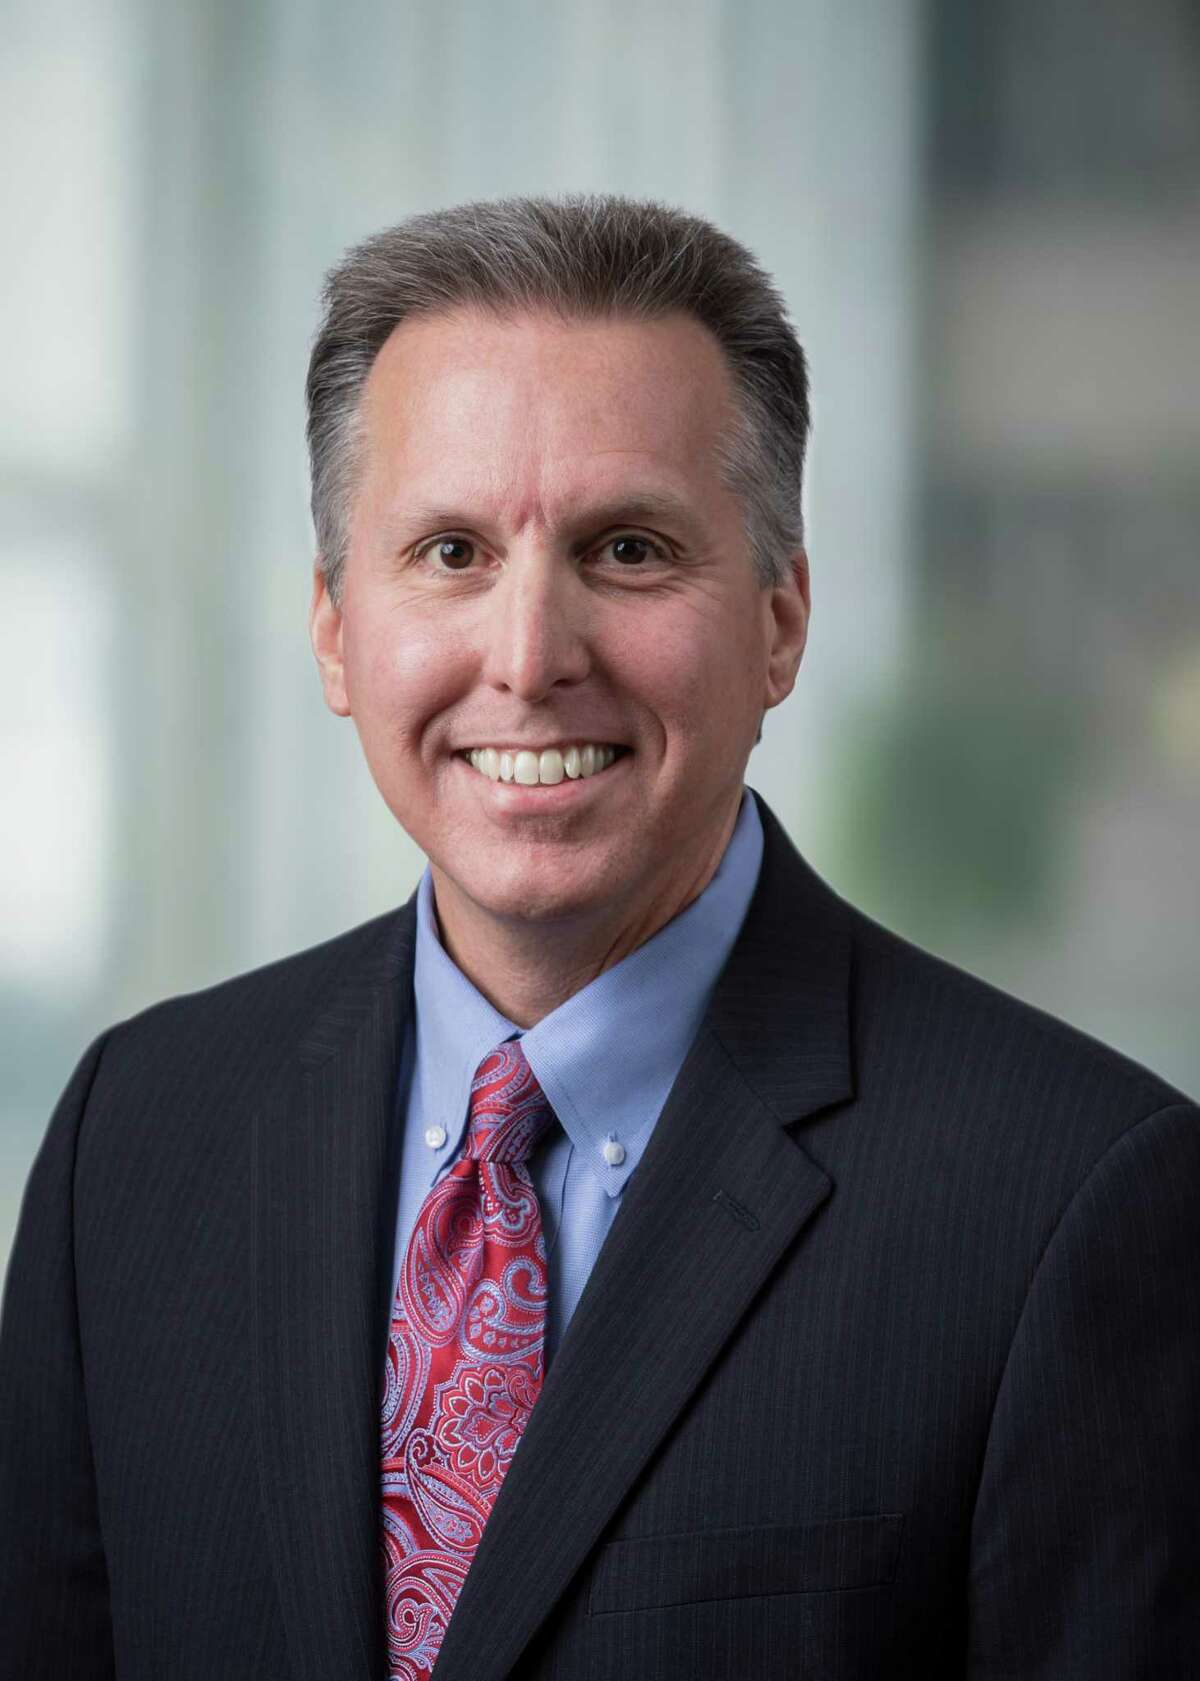 Mark Stauffer is the CEO and president of Orion Group Holdings, which moved up to No. 7.